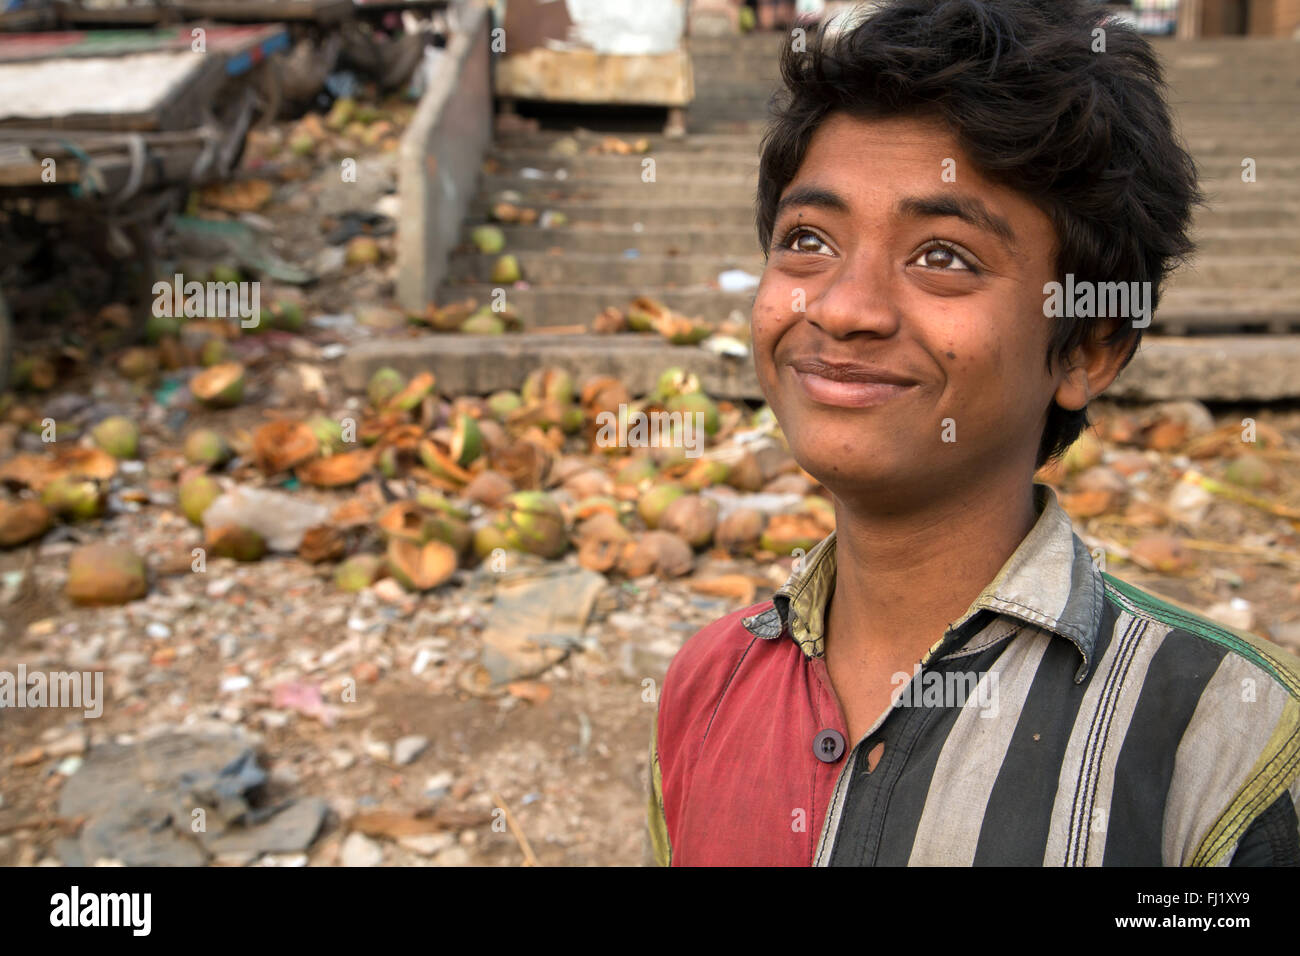 Portrait of young man in Dhaka, Bangladesh - Stock Image